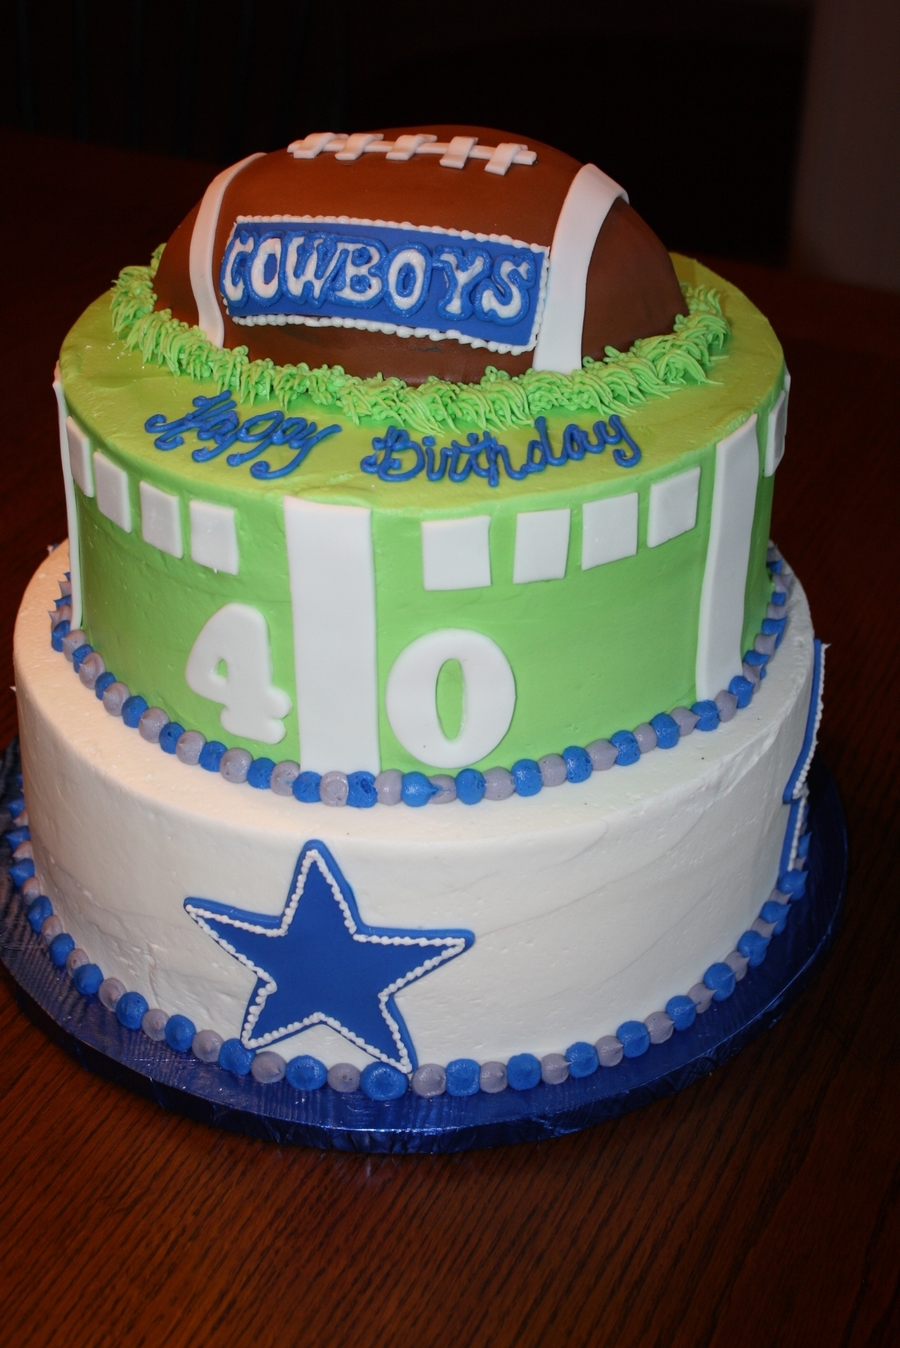 Dallas Cowboys Birthday Cake on Cake Central